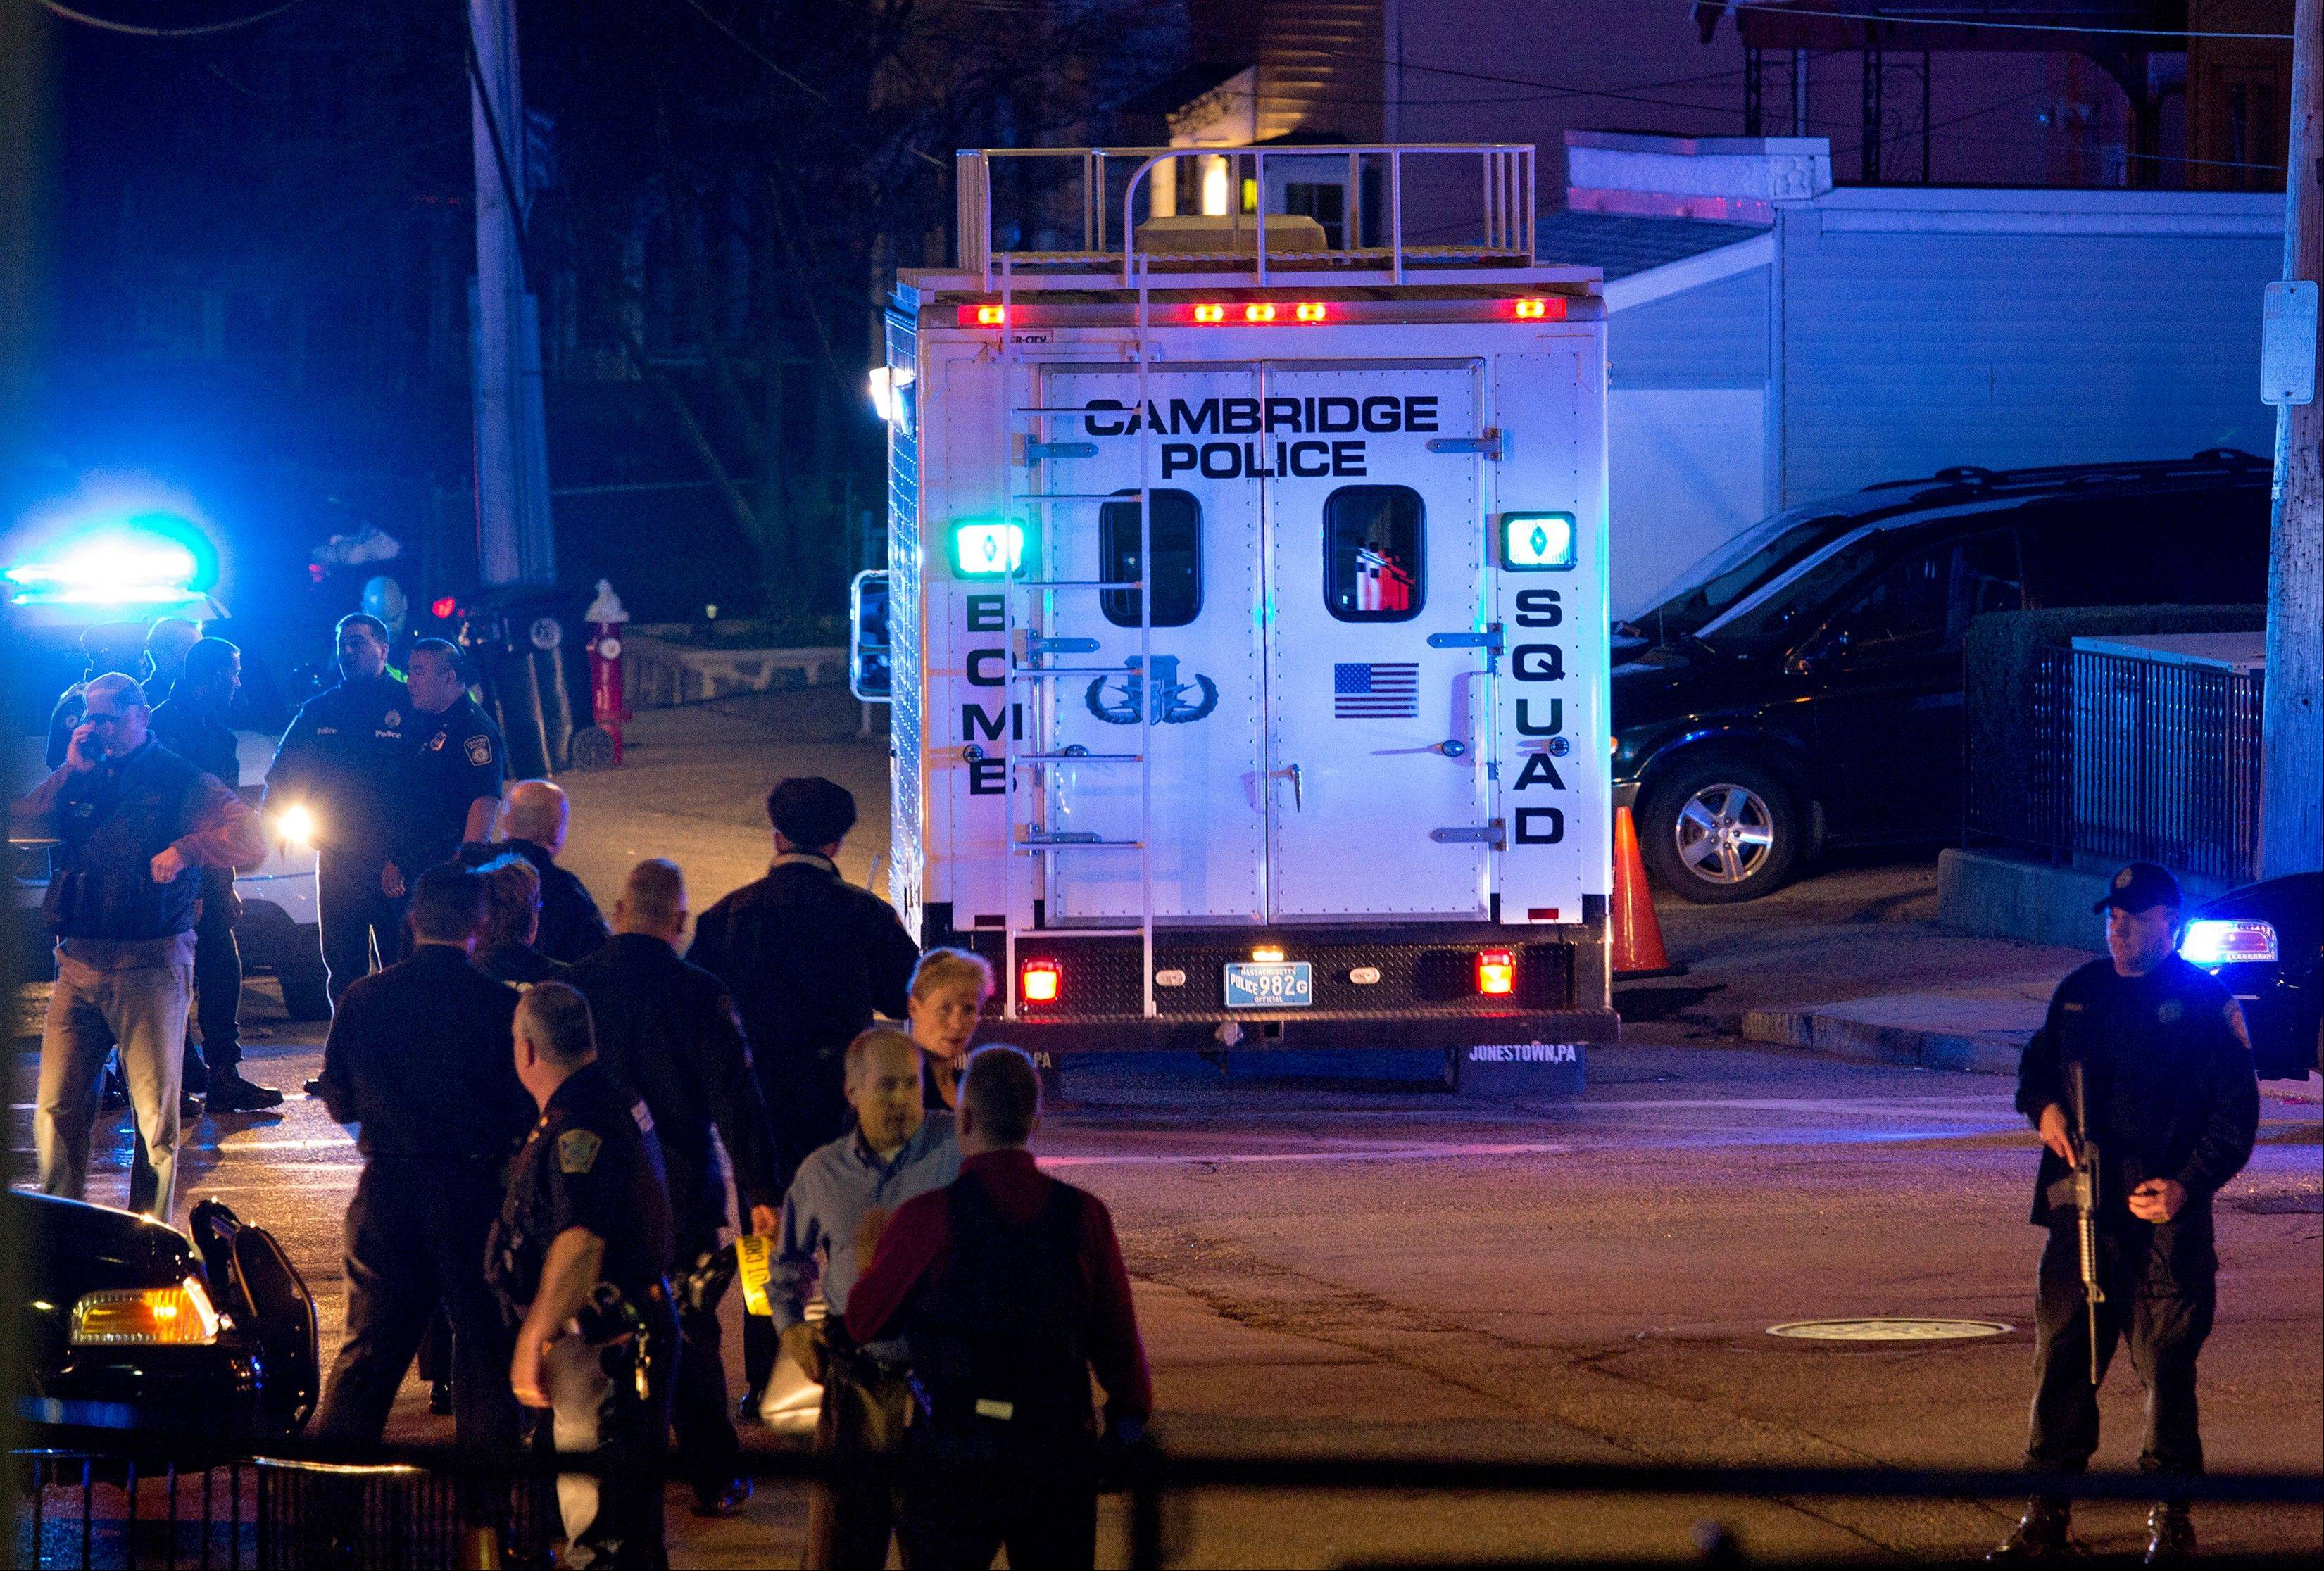 A bomb squad truck arrives at an incident Friday, April 19, 2013, in Watertown, Mass. in which shots were reported to have been fired.